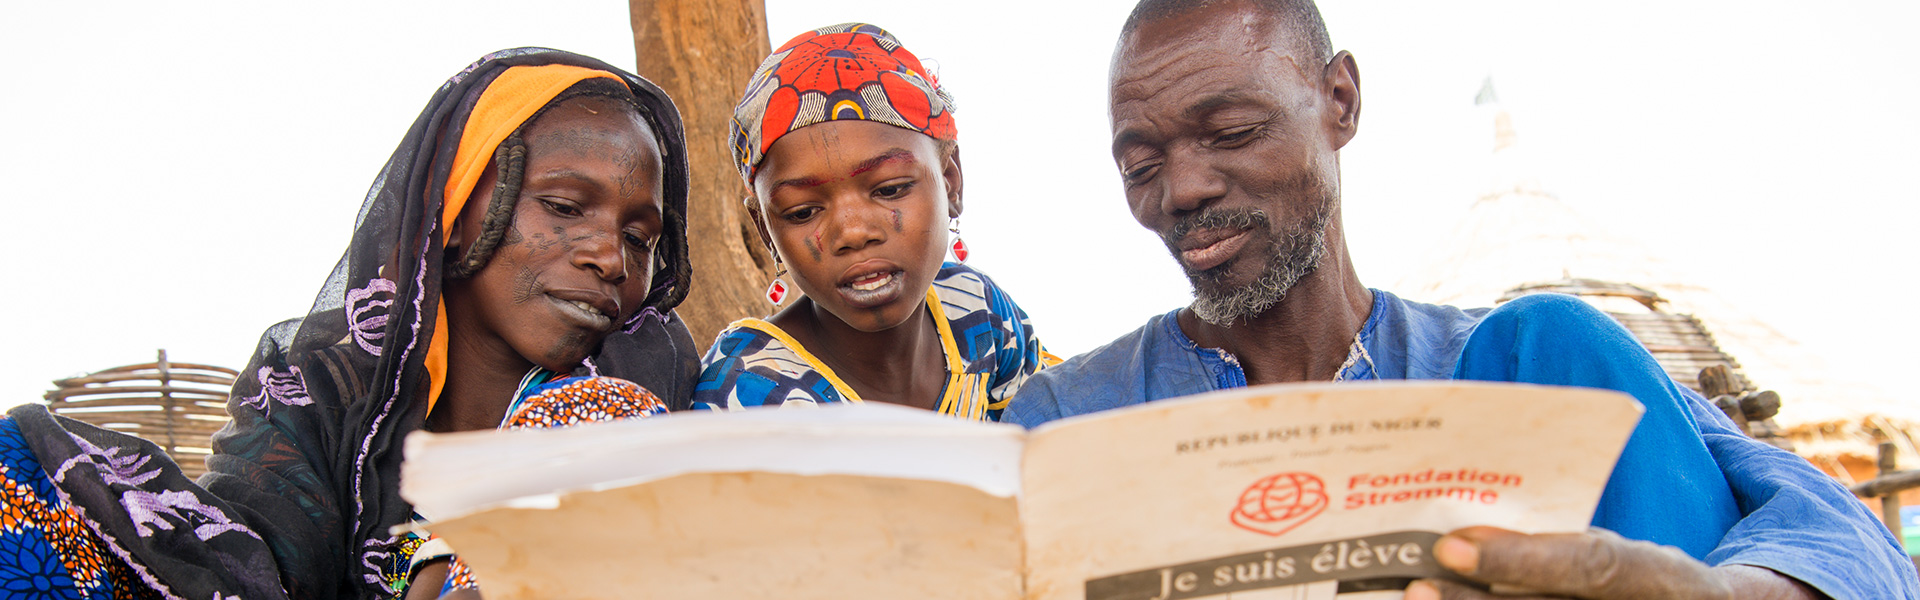 2017-niger-speed-school-guidé-family-photo-torleif-svensson